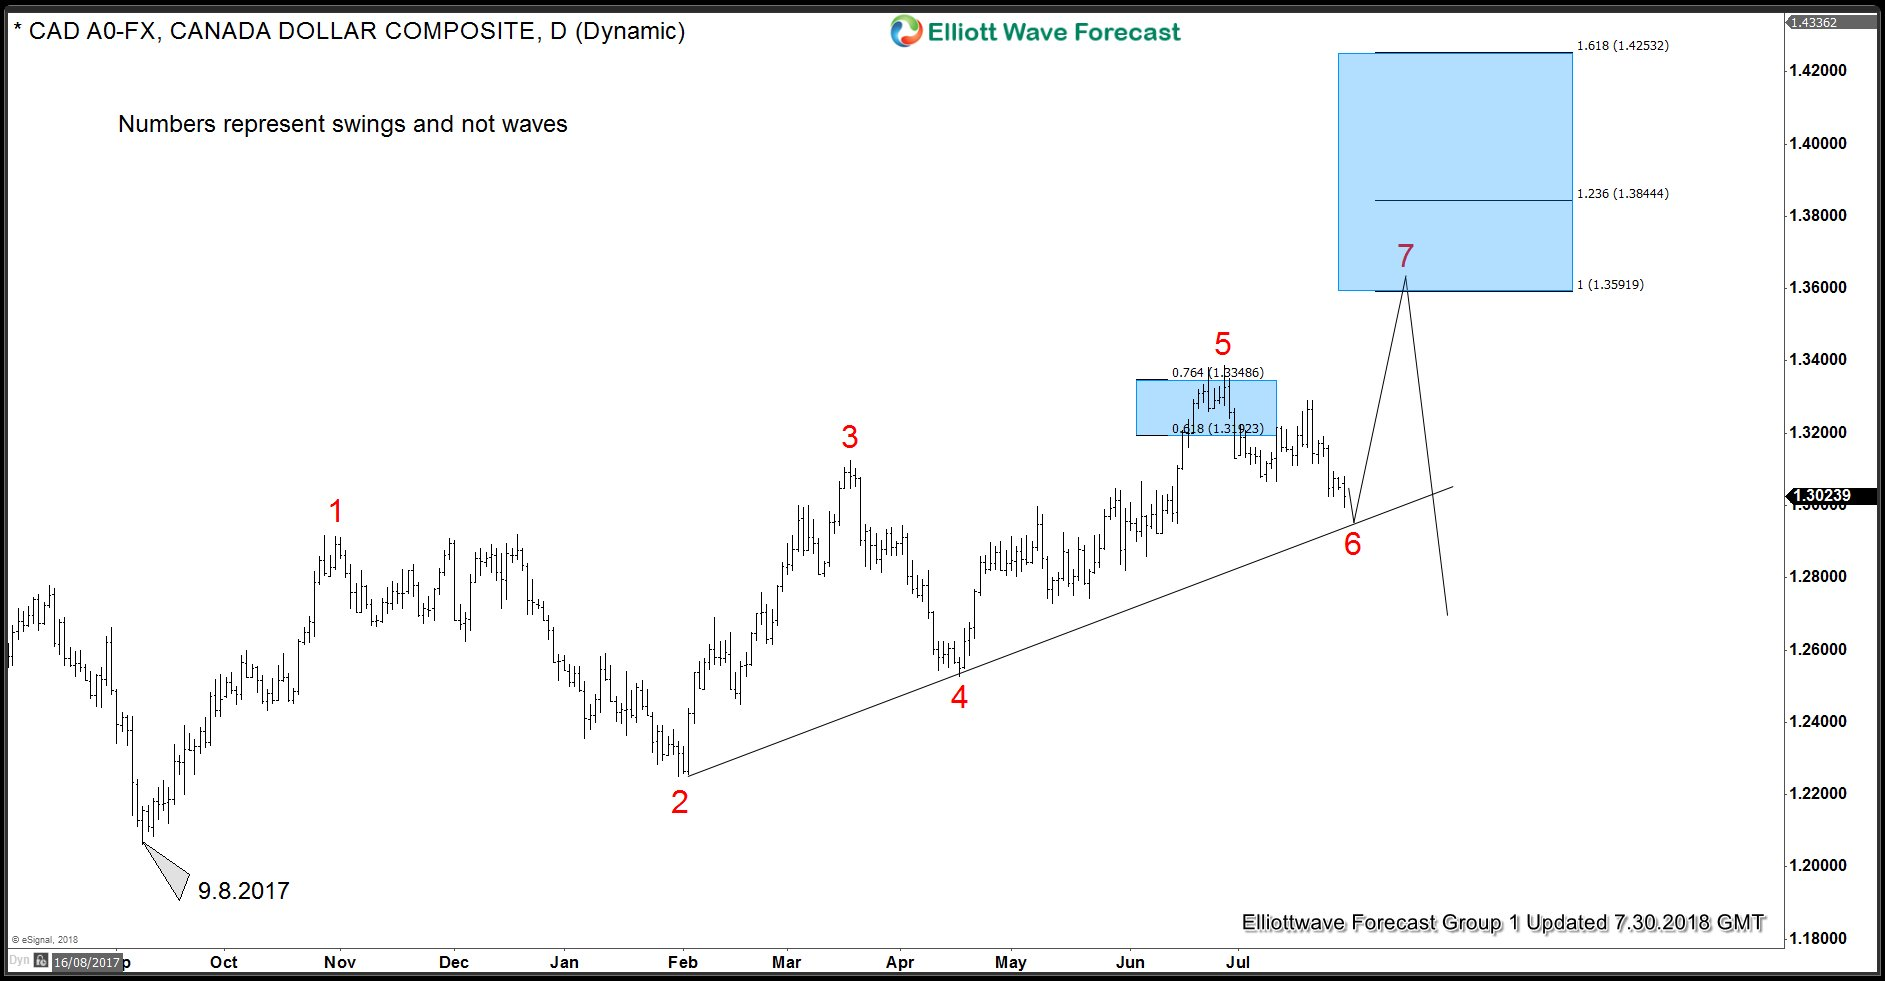 USDCAD Elliott Wave Analysis - Daily Swings Sequence